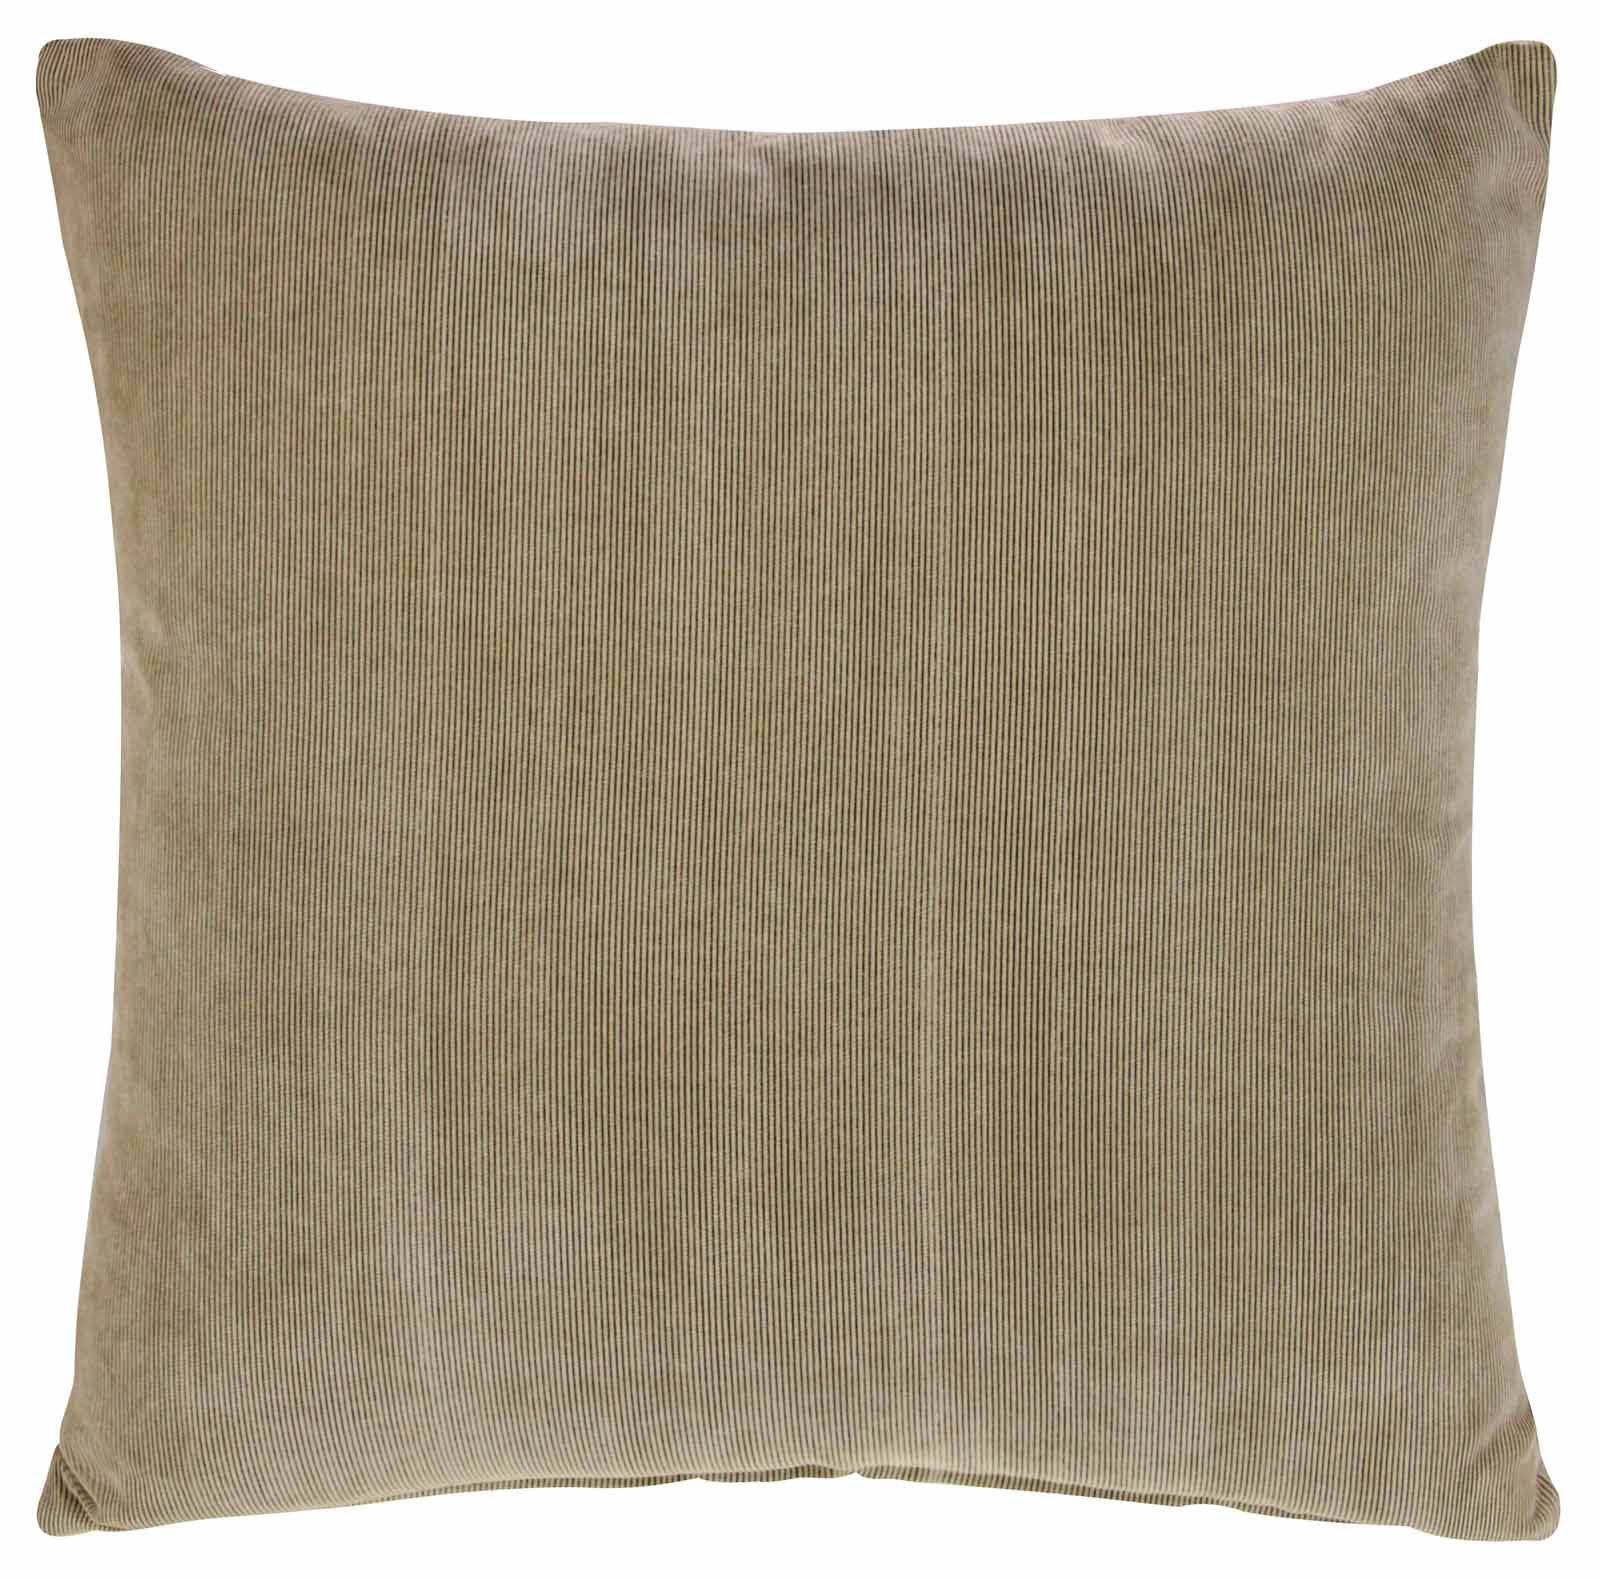 Throw Pillows Lowes : LUXURY CORD CUSHION COVER 18